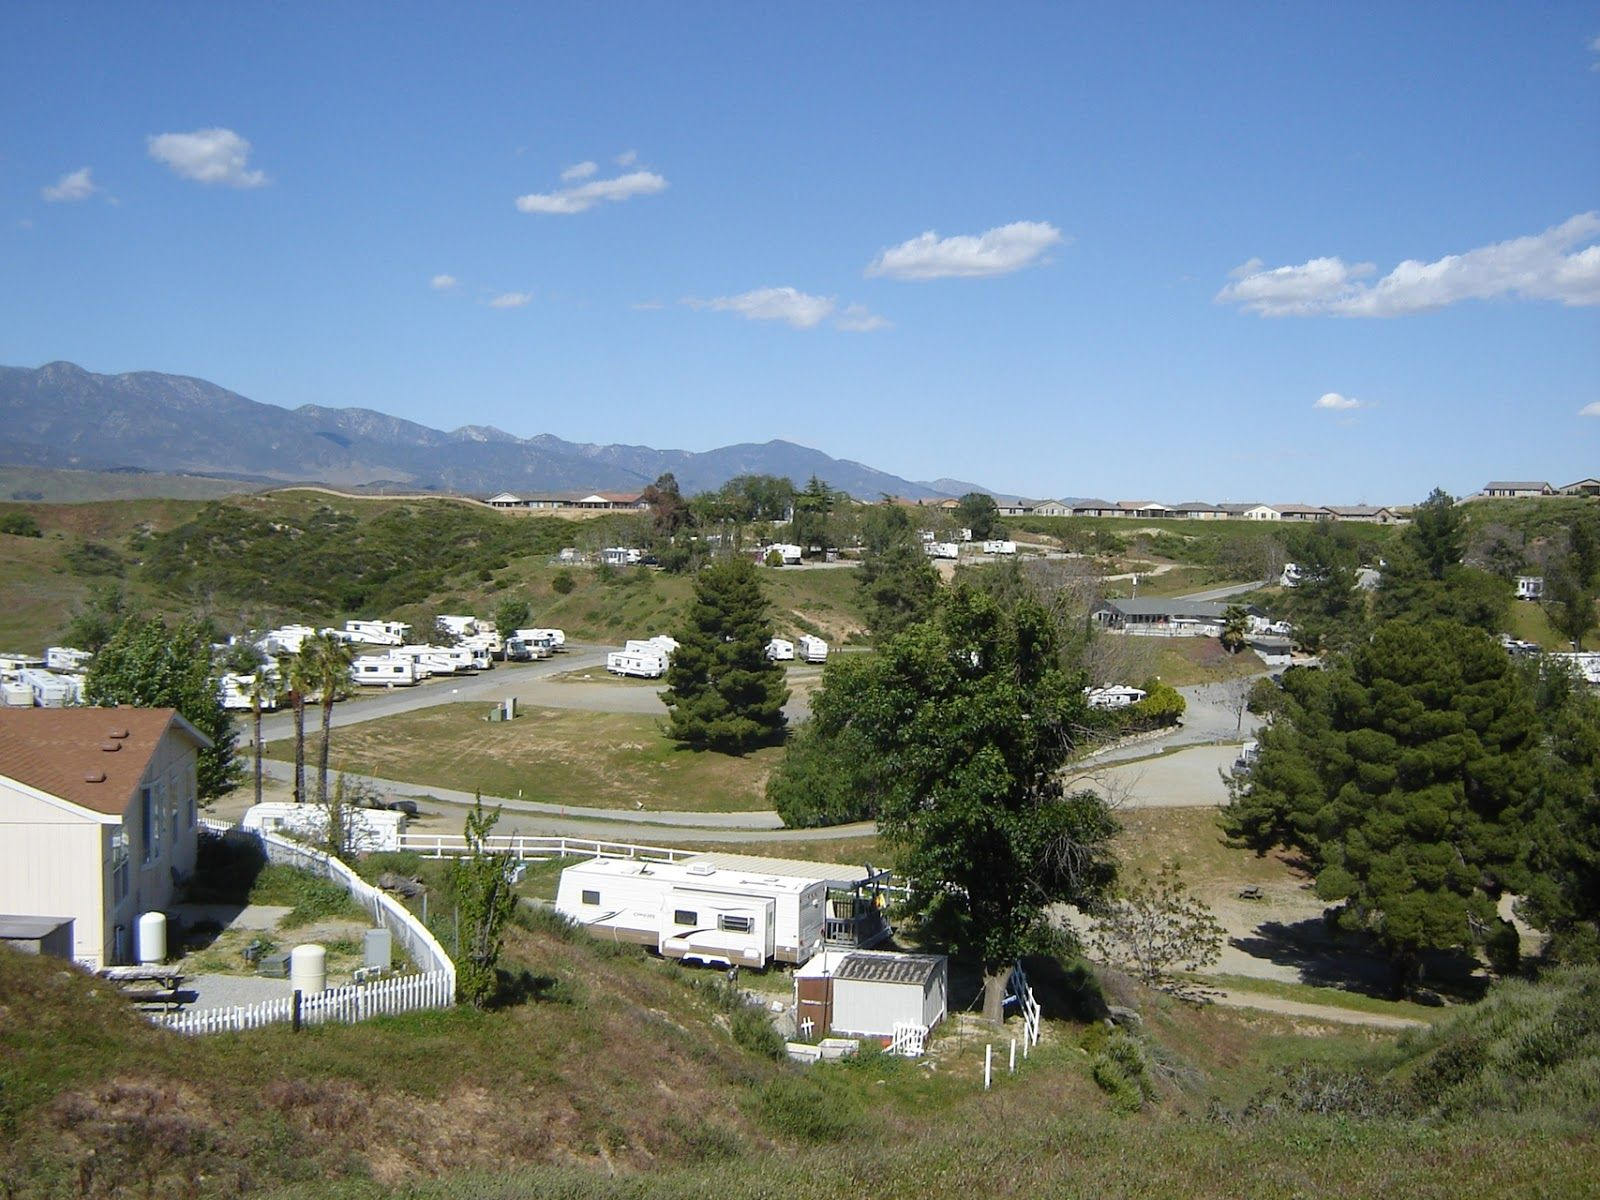 Country Hills Rv Park Resort Beaumont Ca Passport America Participating Park With Images Park Resorts Rv Parks Resort